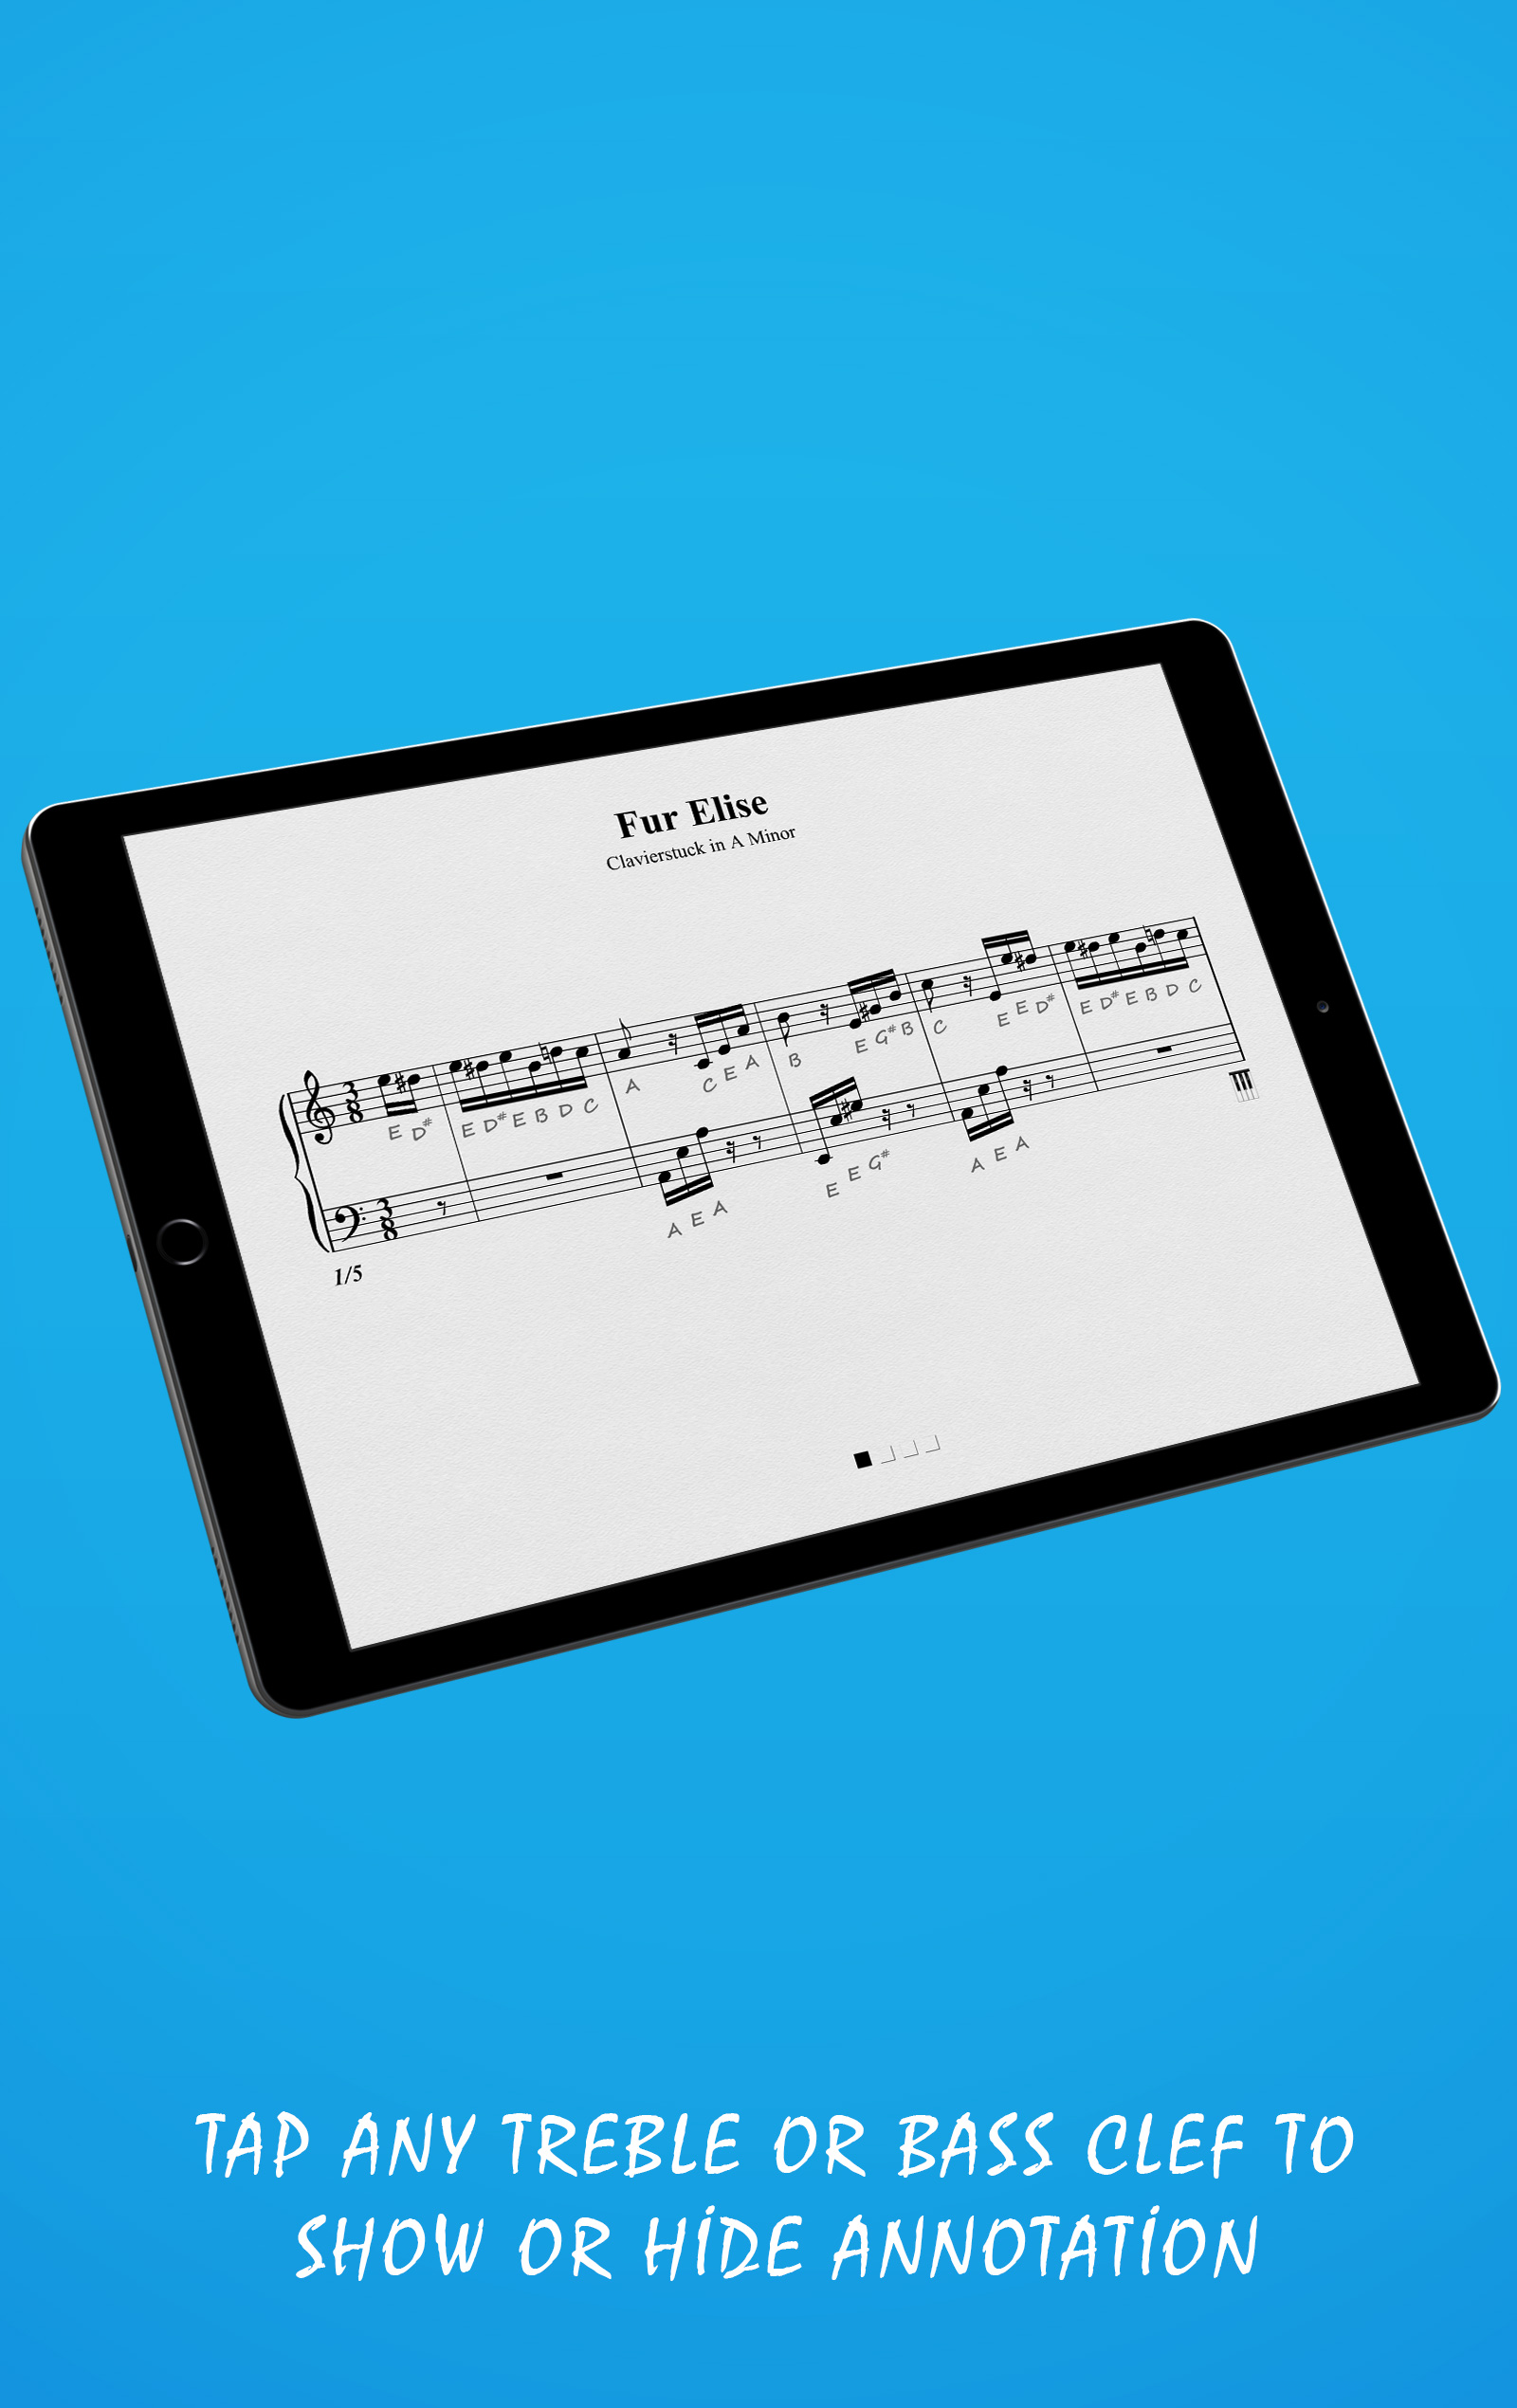 Fur Elise Landscape Mode (Tablet)